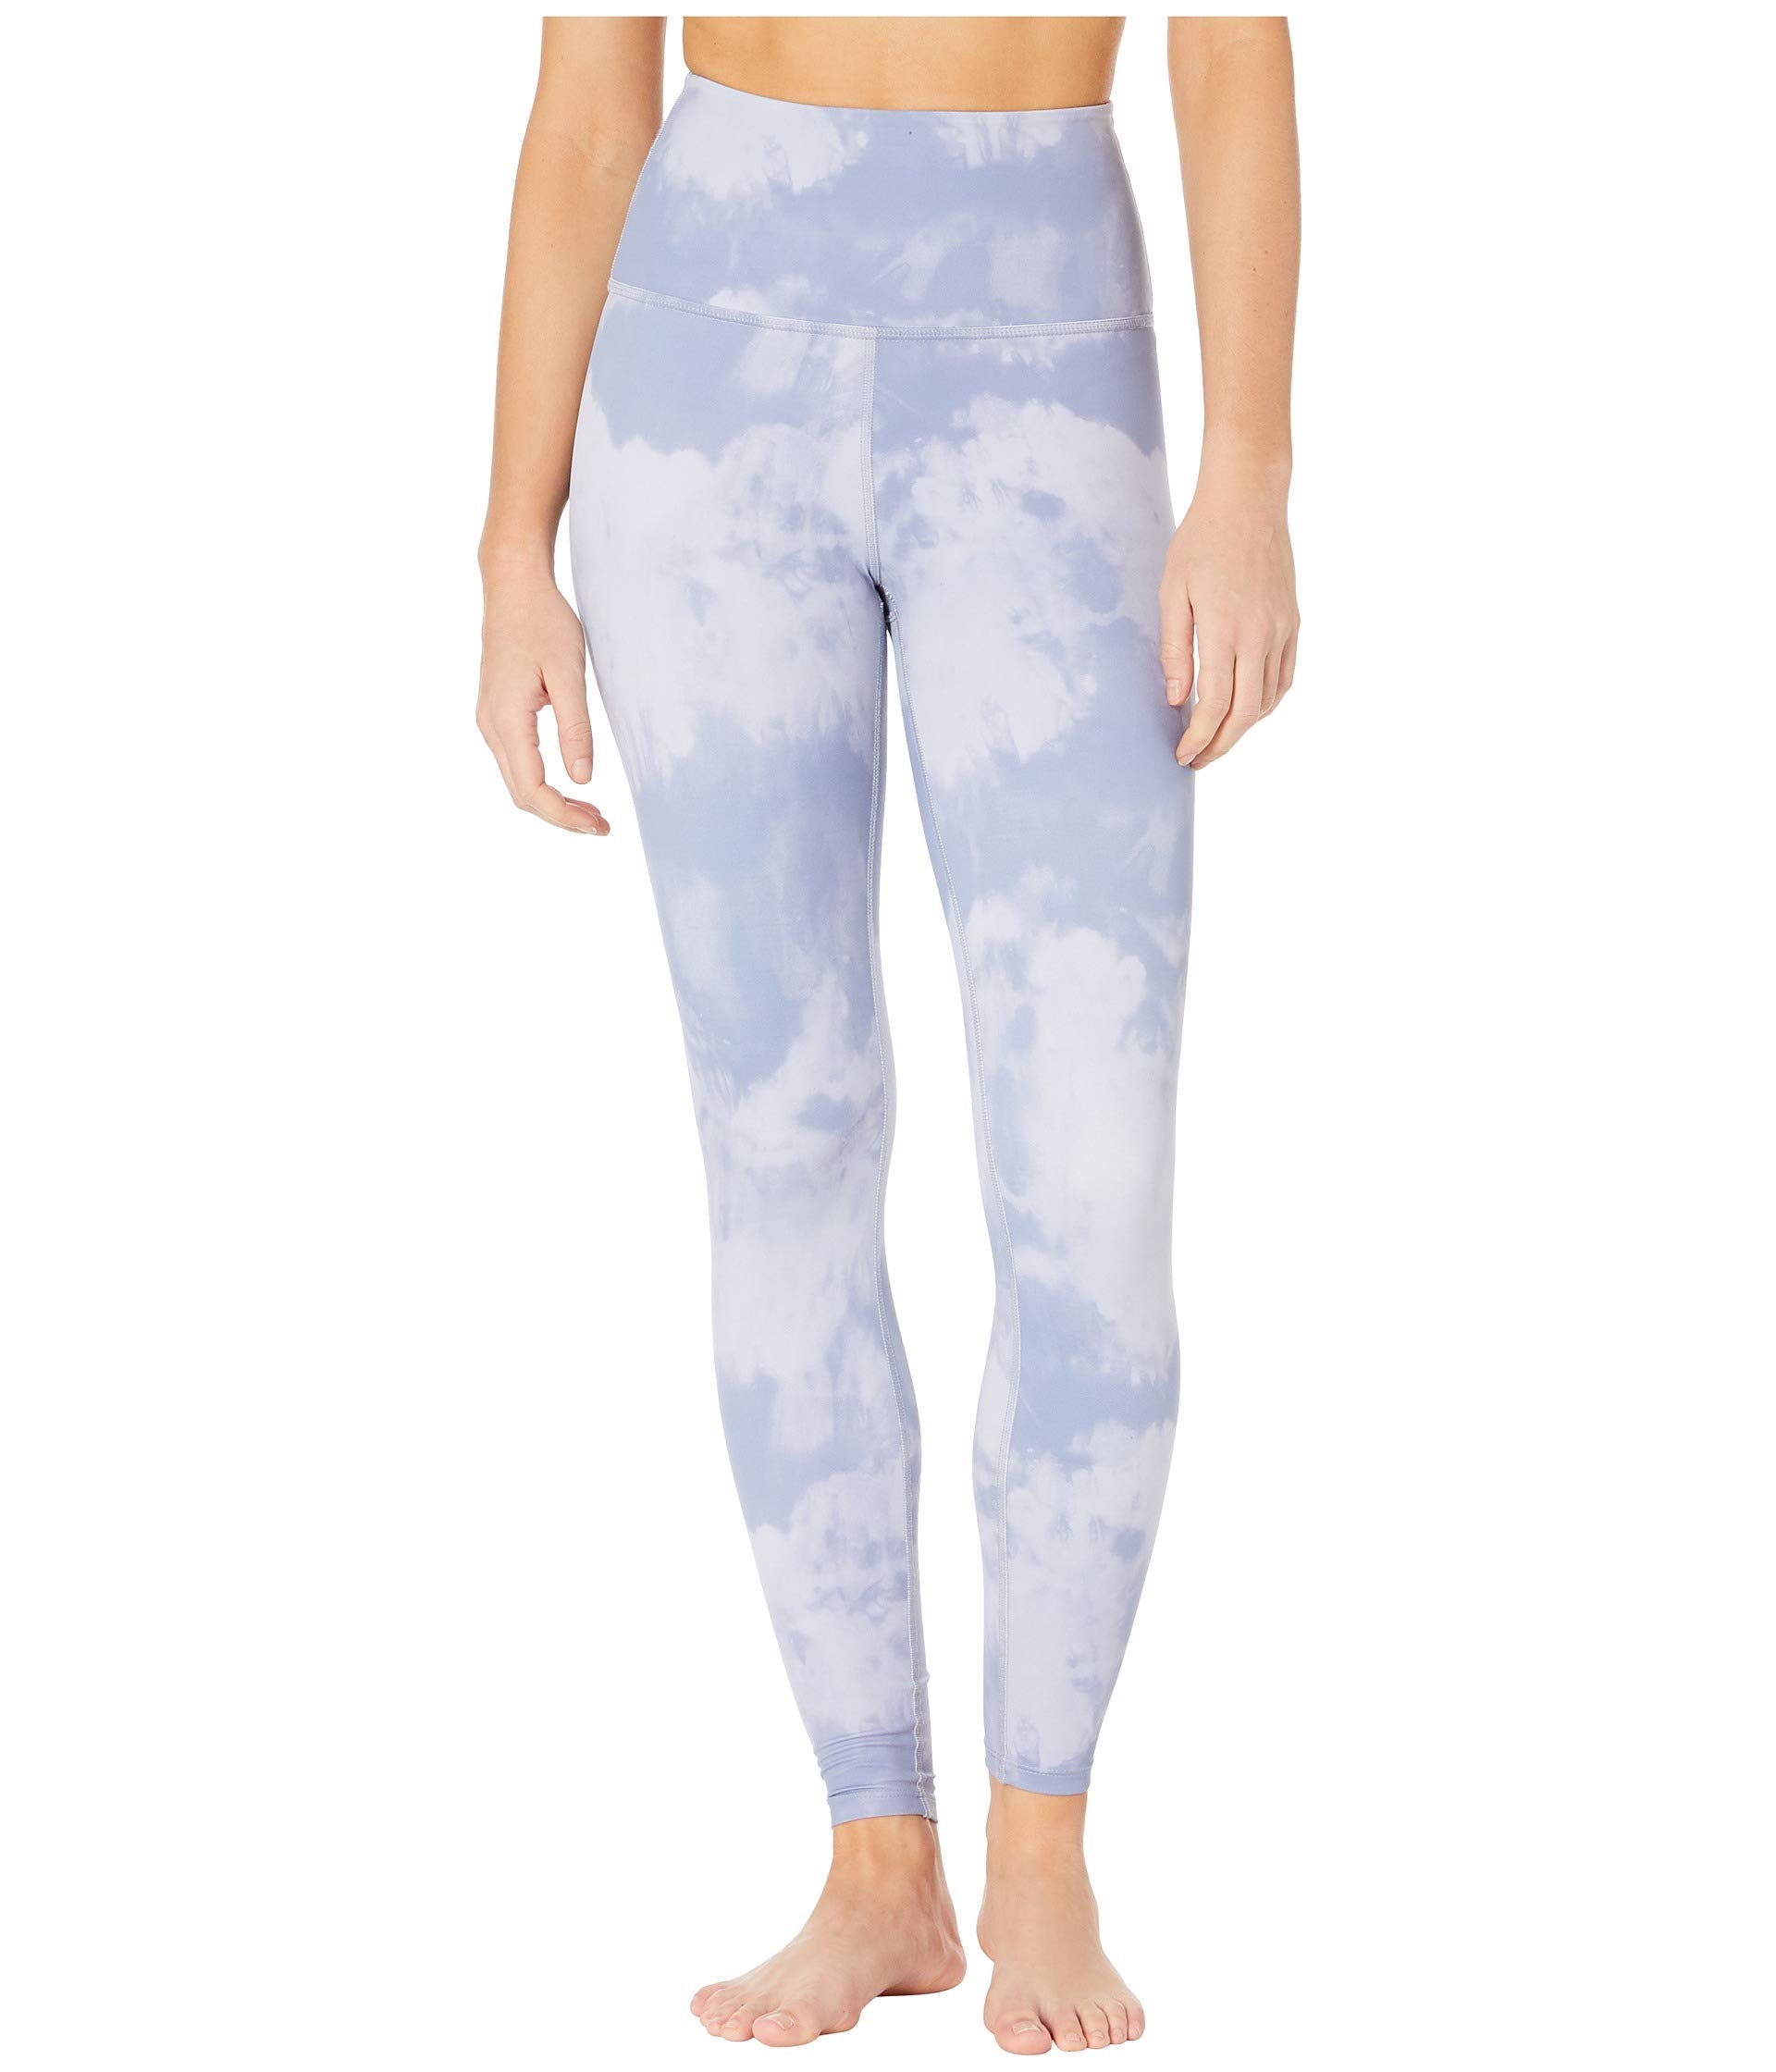 Olympus High Waisted Midi Leggings